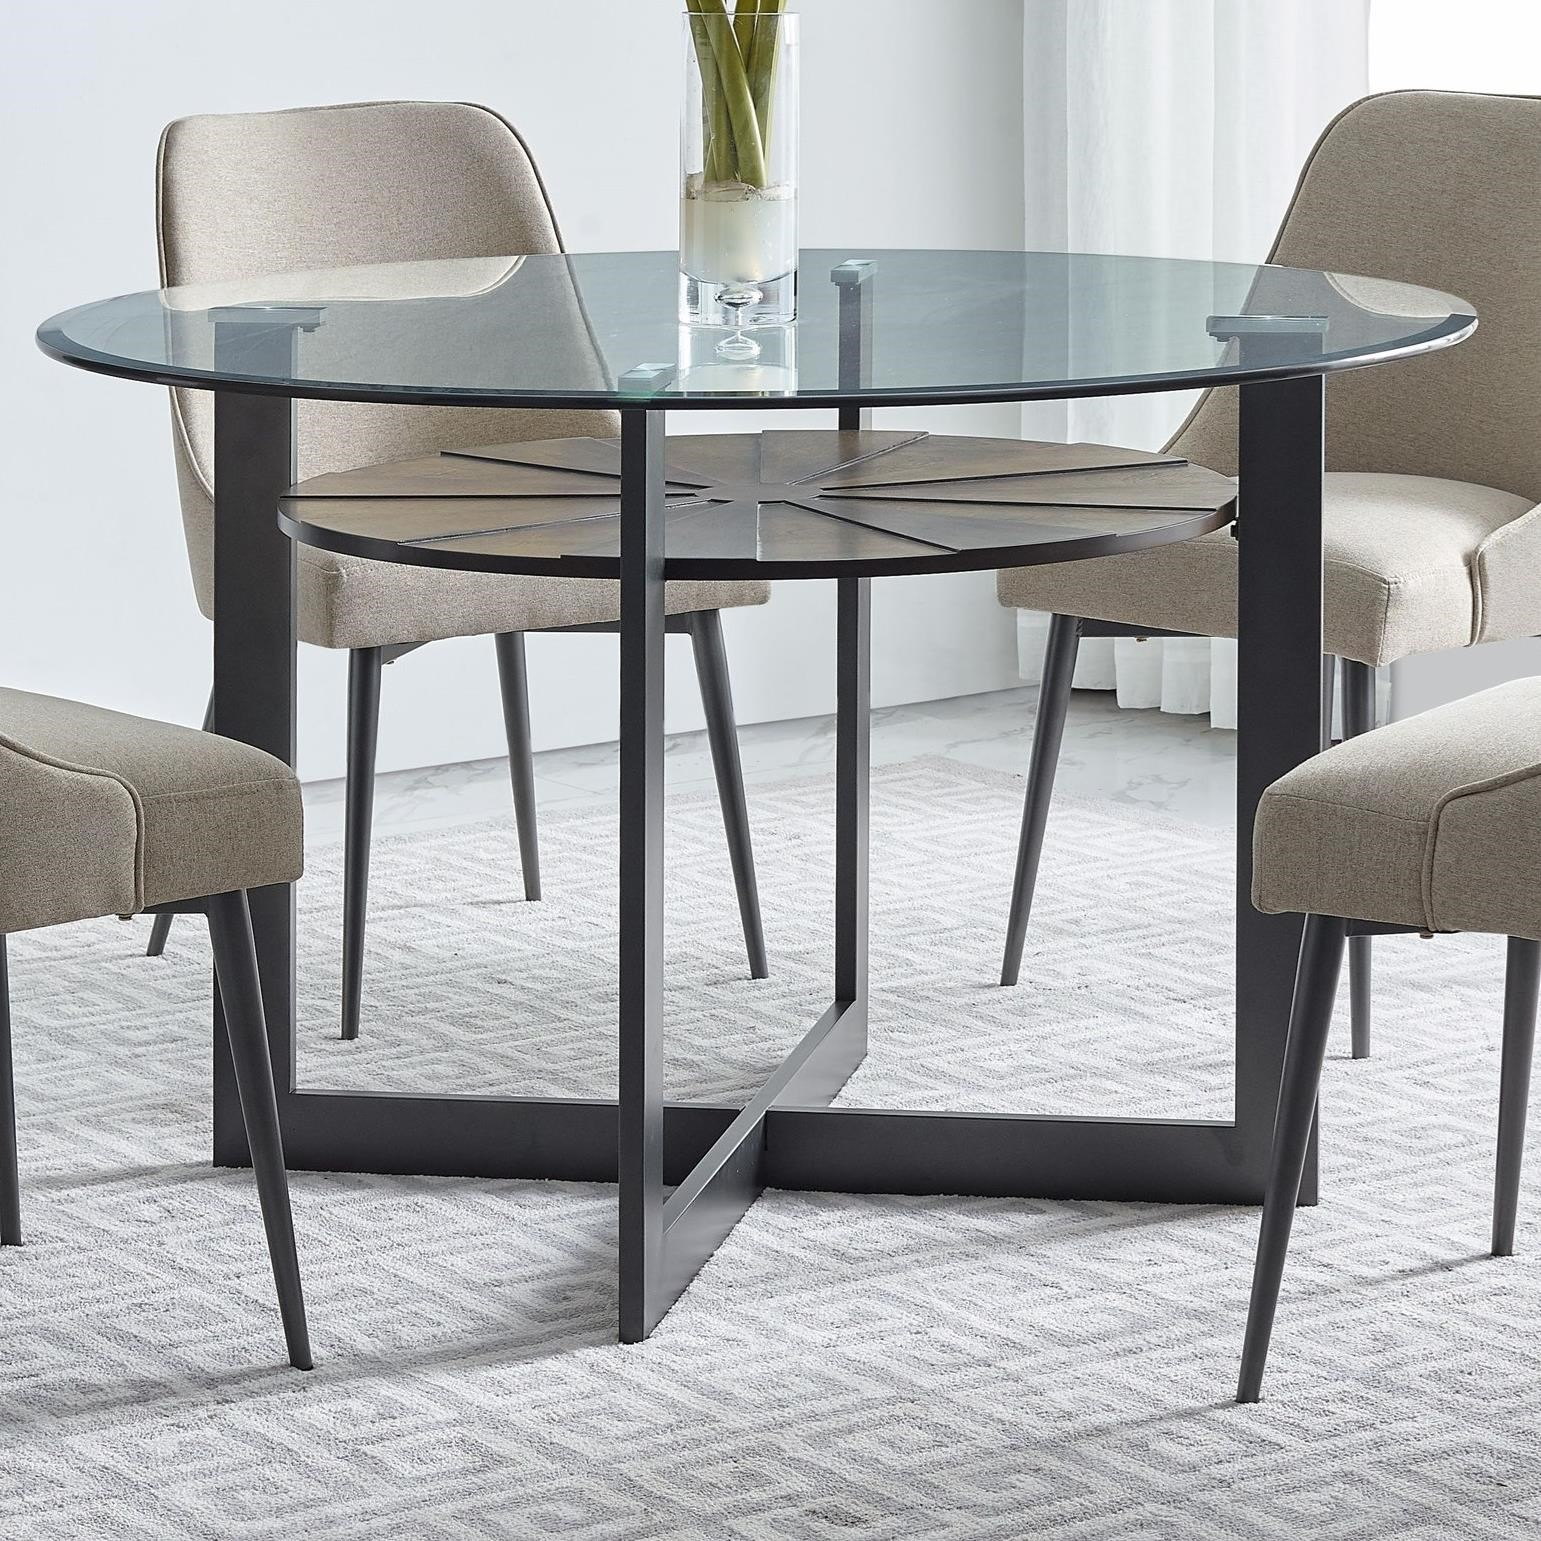 Olson Ss Contemporary Round Gl Dining Table With Iron And Birch Base By Vendor 3985 At Becker Furniture World